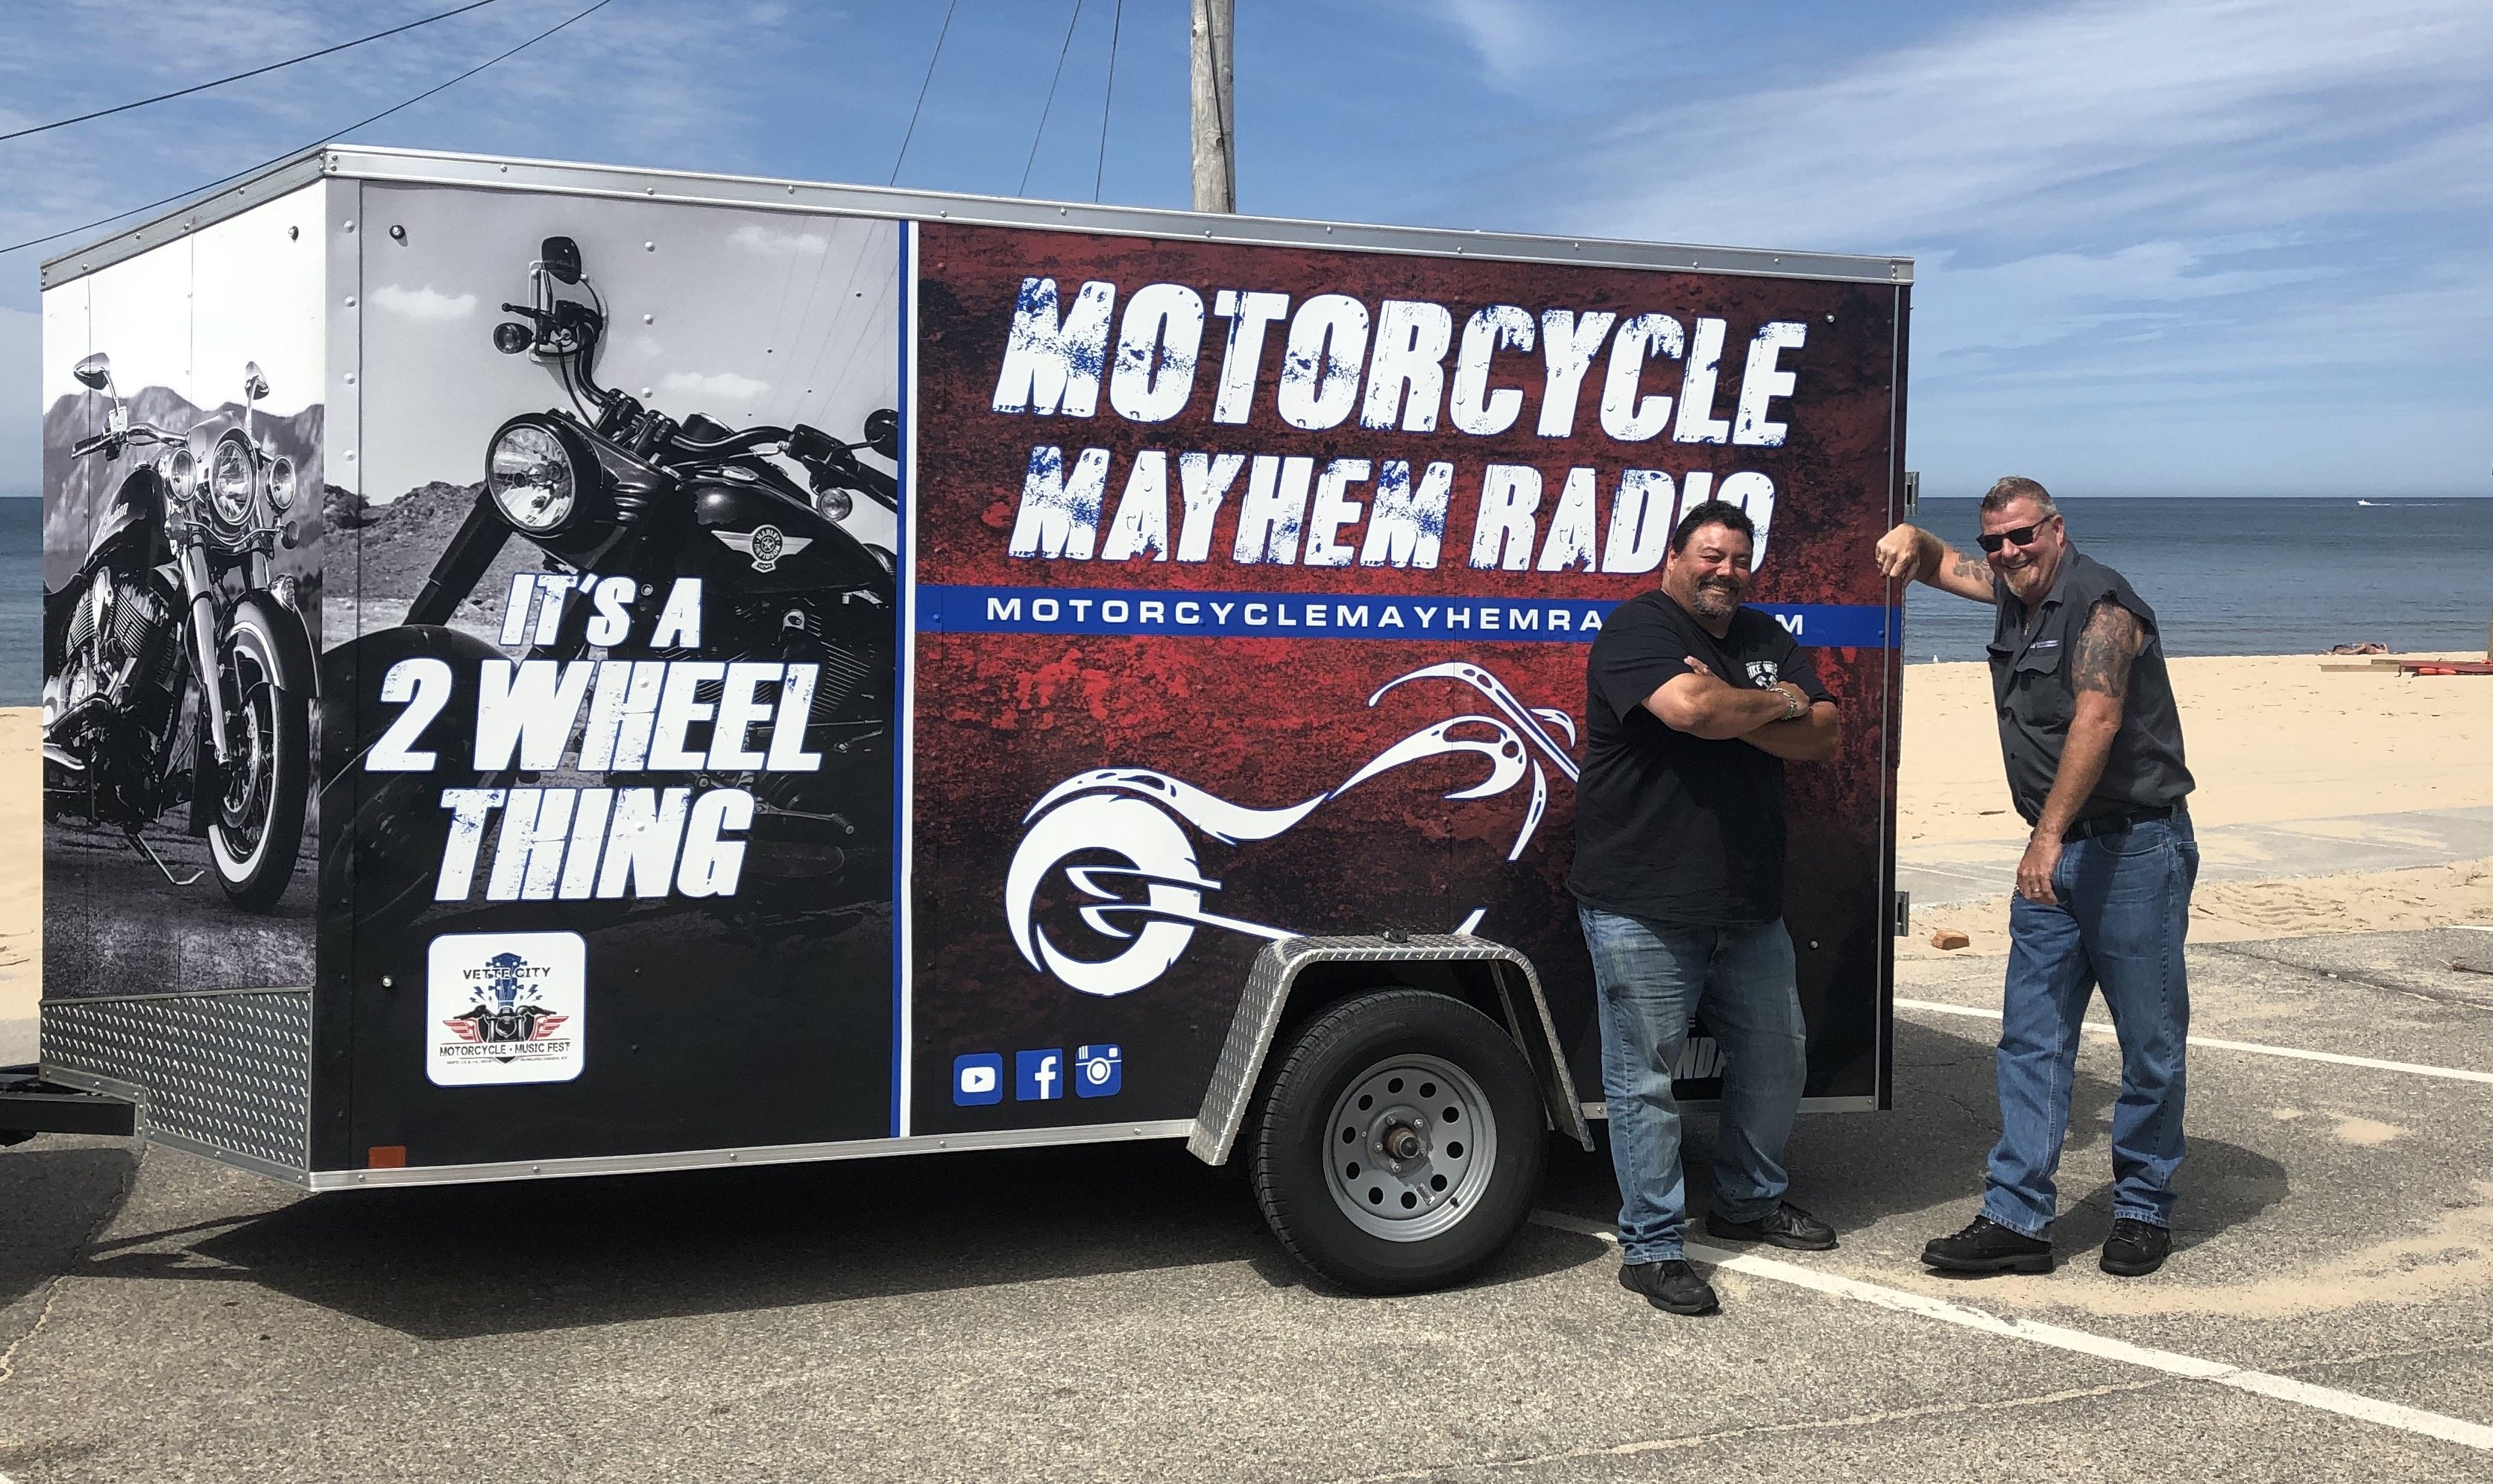 Motorcycle Mayhem Radio – The Motorcycle Lifestyle and the People Who Live it